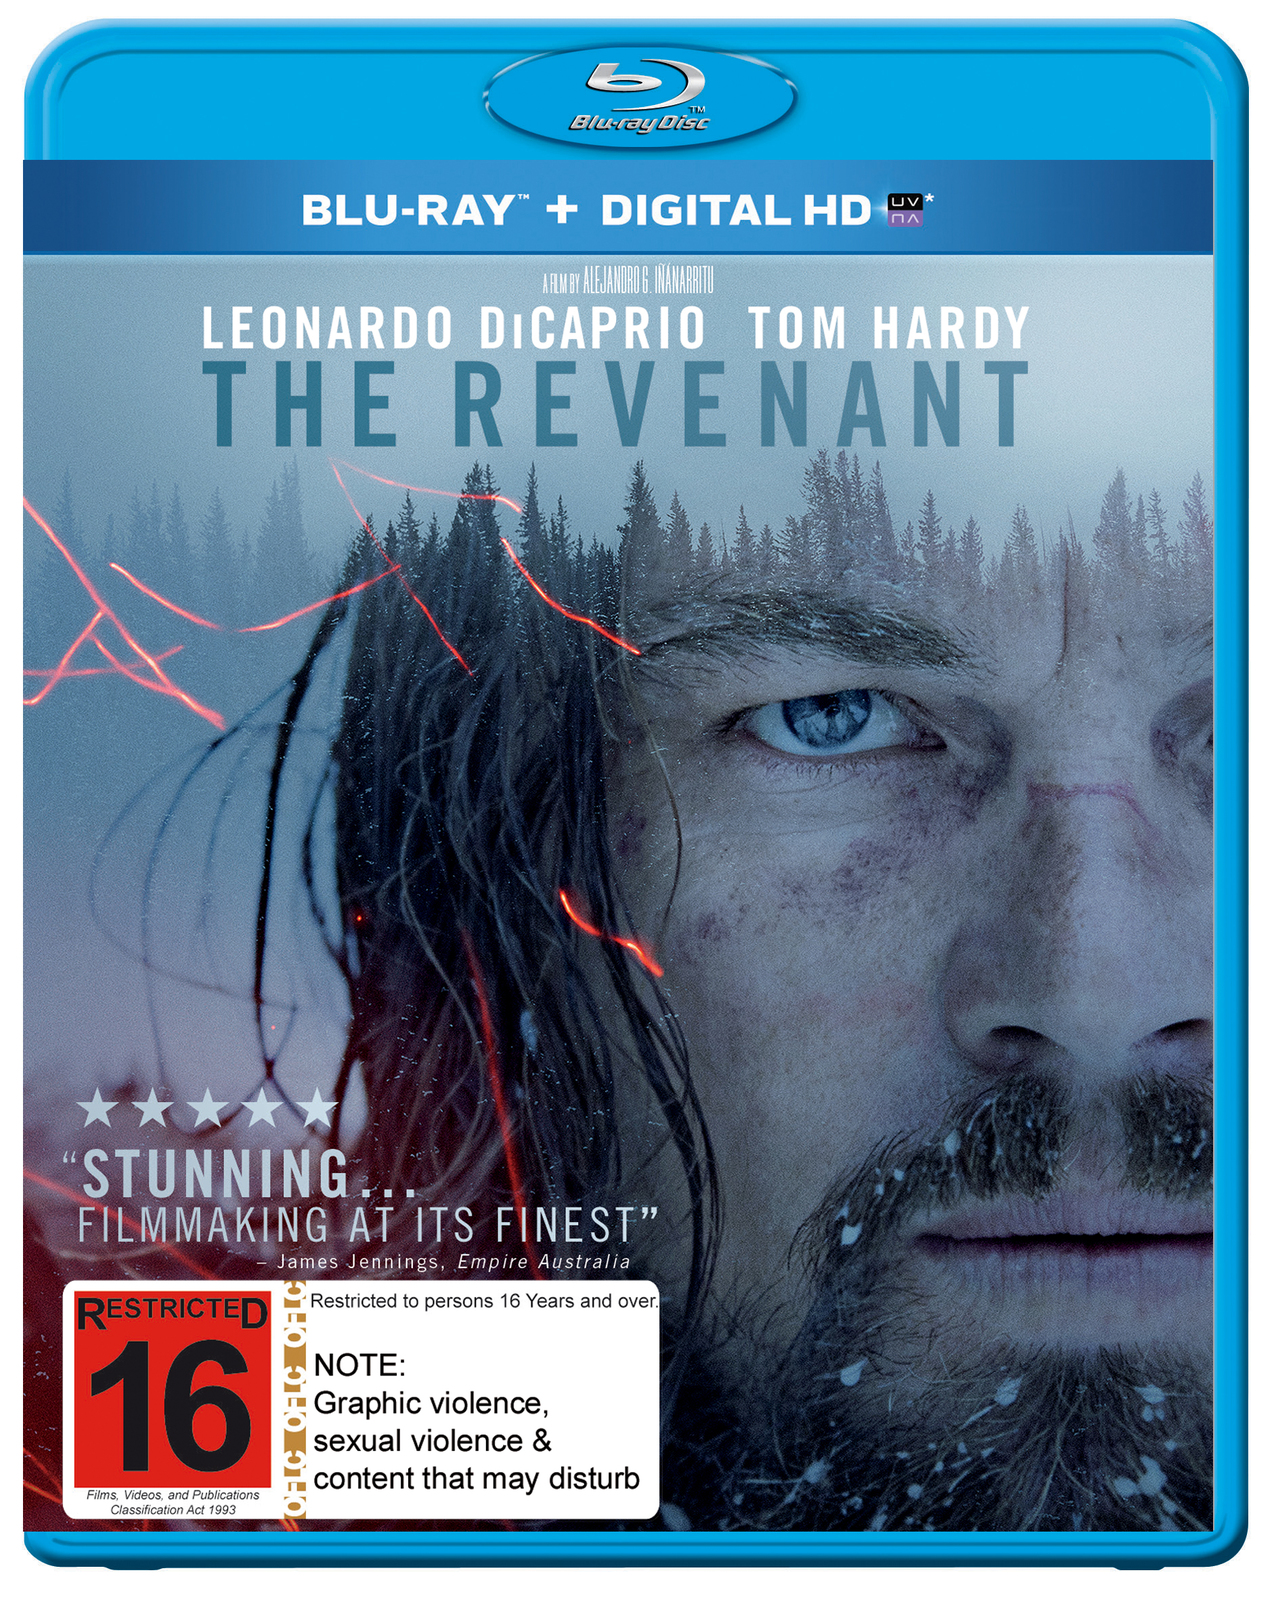 The Revenant on Blu-ray image